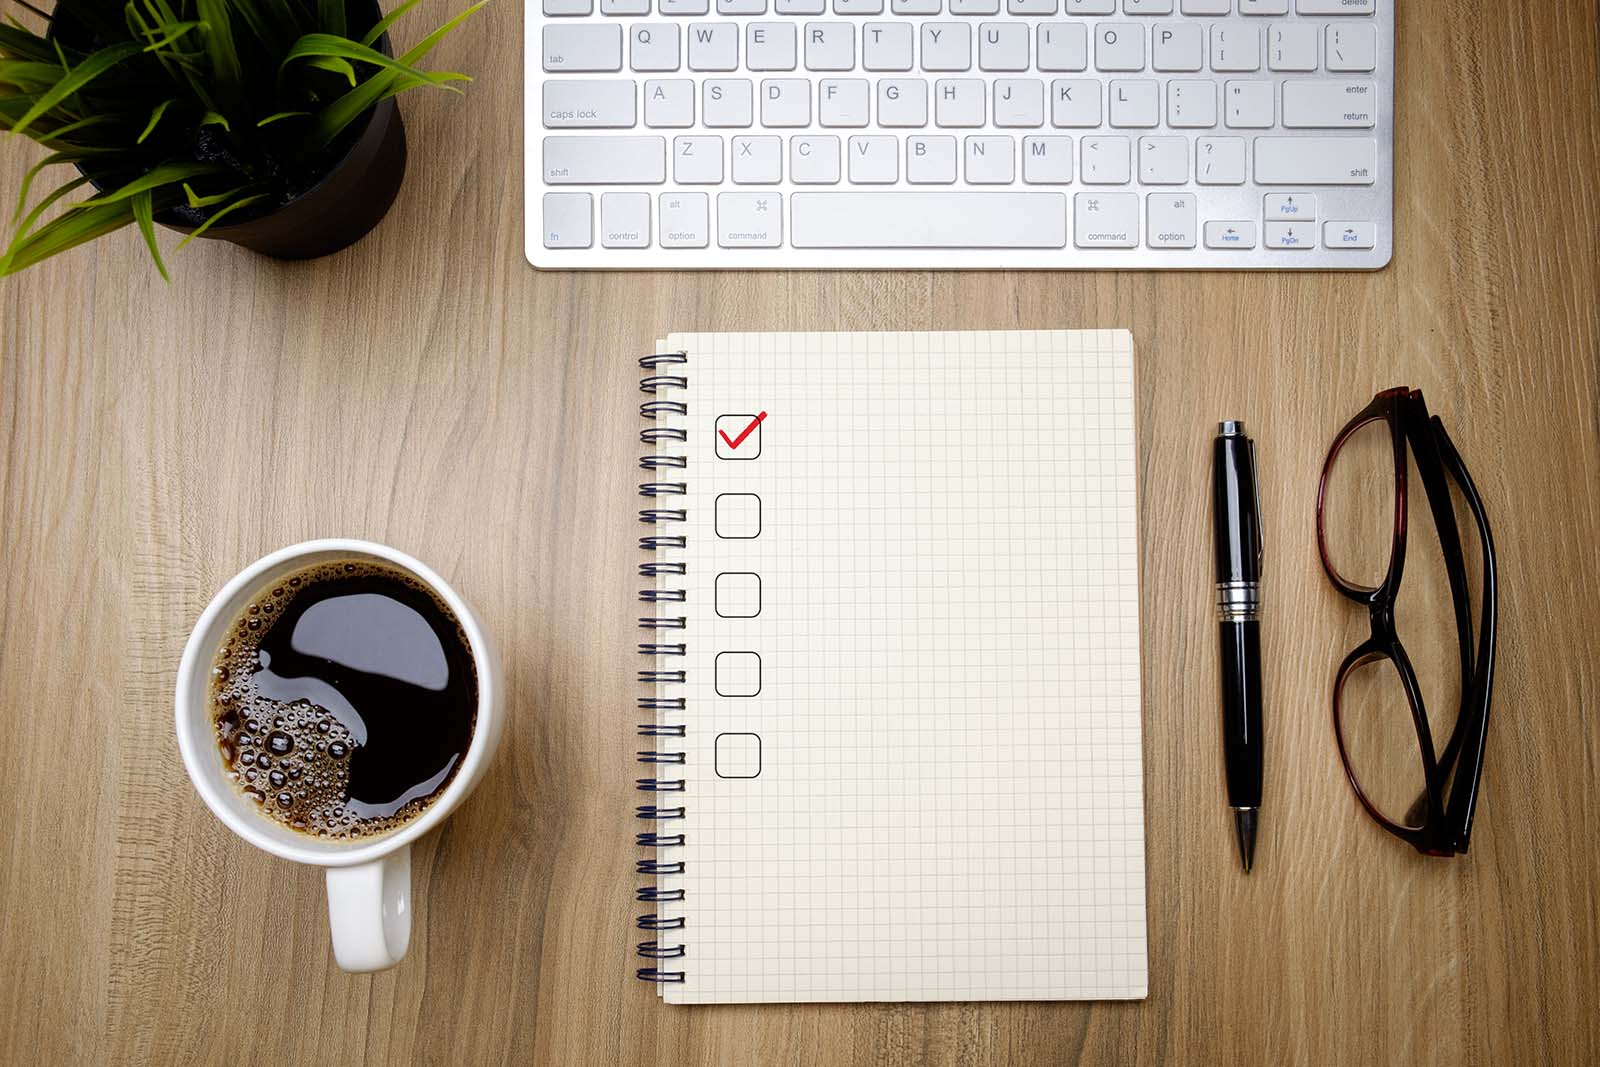 Checklist sitting on a desk with a keyboard, coffee, pen, and glasses